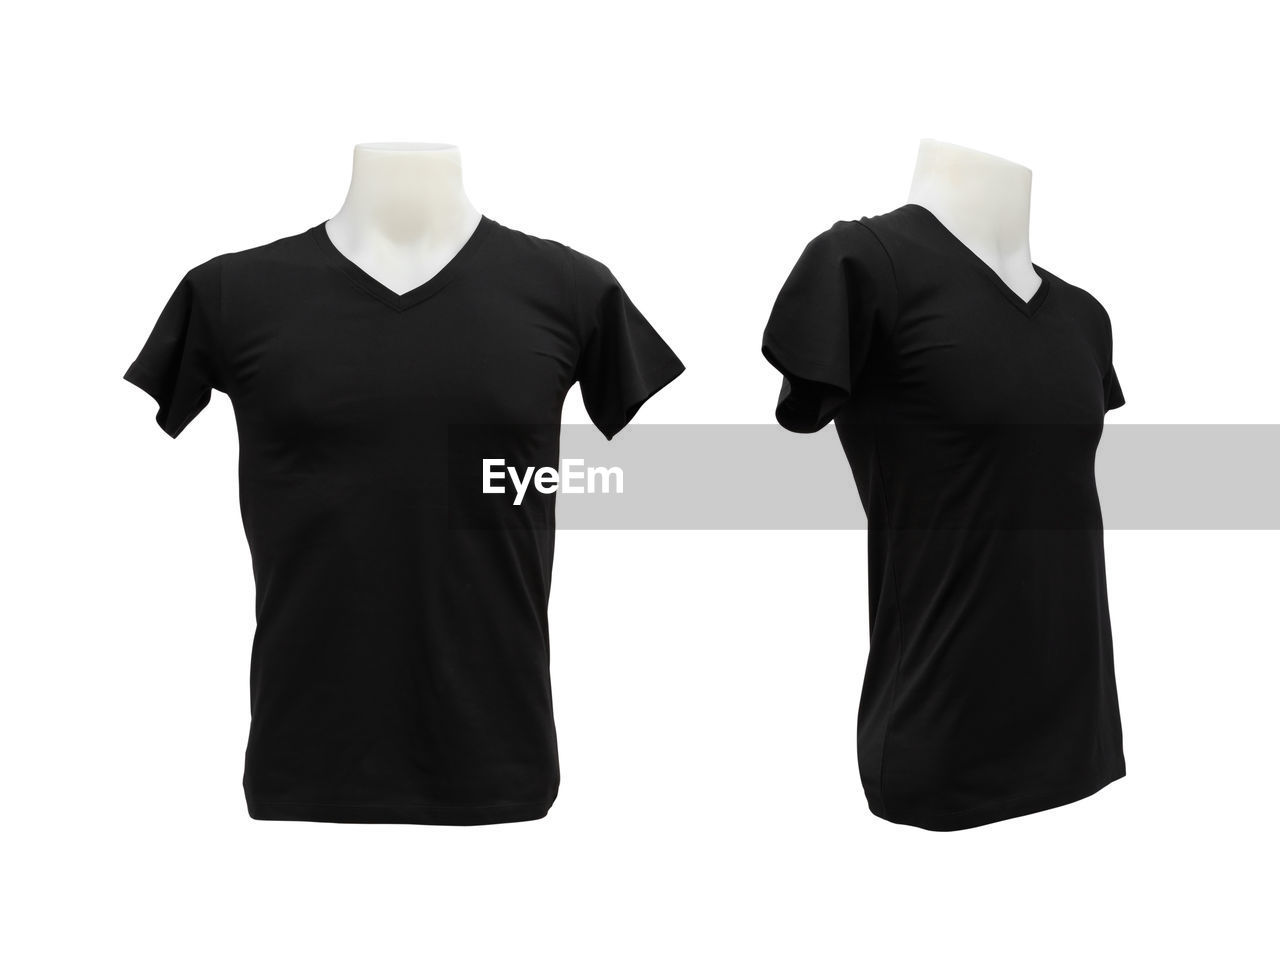 clothing, fashion, human representation, mannequin, cut out, studio shot, indoors, white background, no people, black color, industry, textile, t-shirt, store, casual clothing, retail, haute couture, copy space, textile industry, retail display, menswear, sleeve, marketing, garment